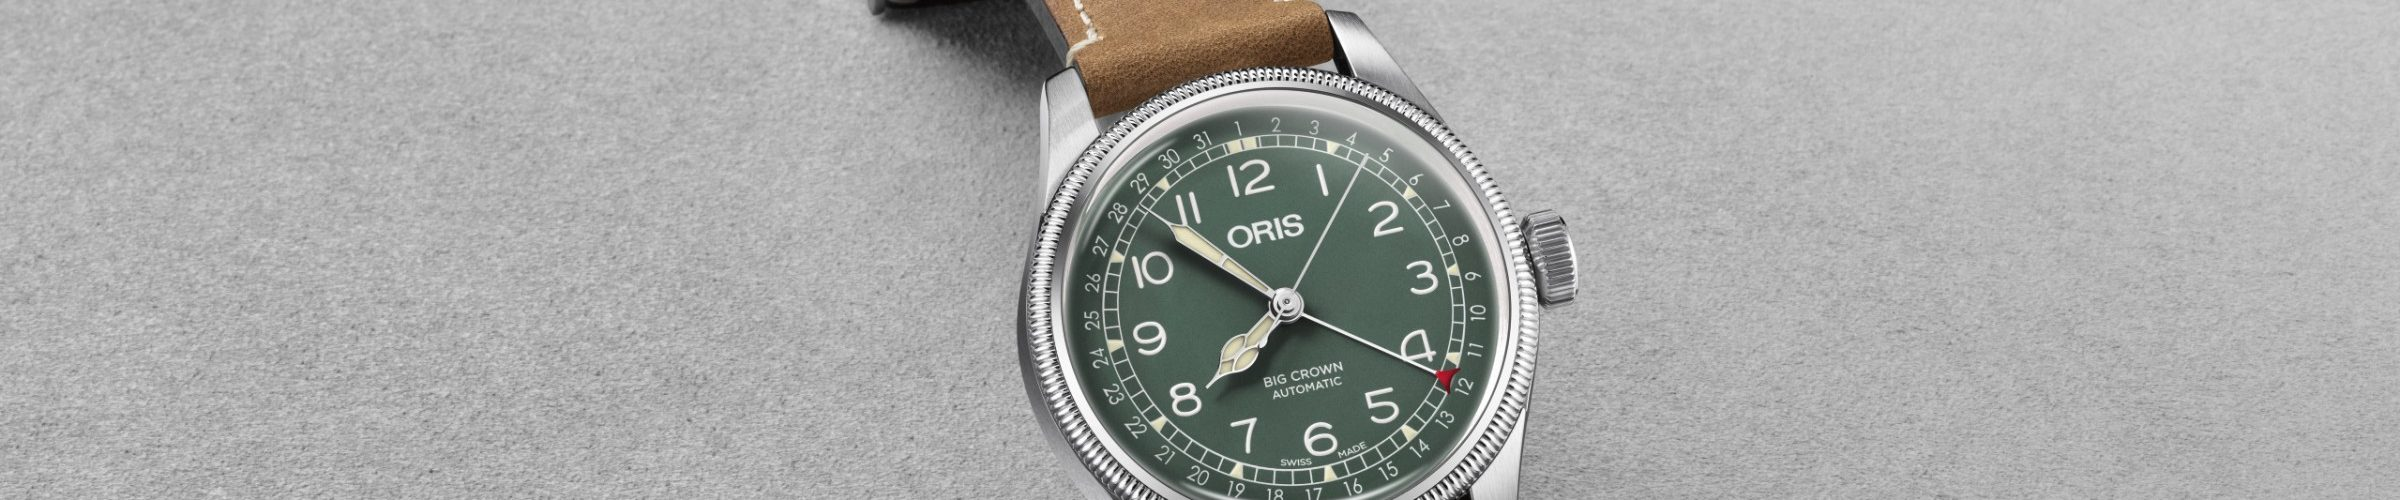 ORIS Big Crown D.26 286 HB-RAG Limited Head